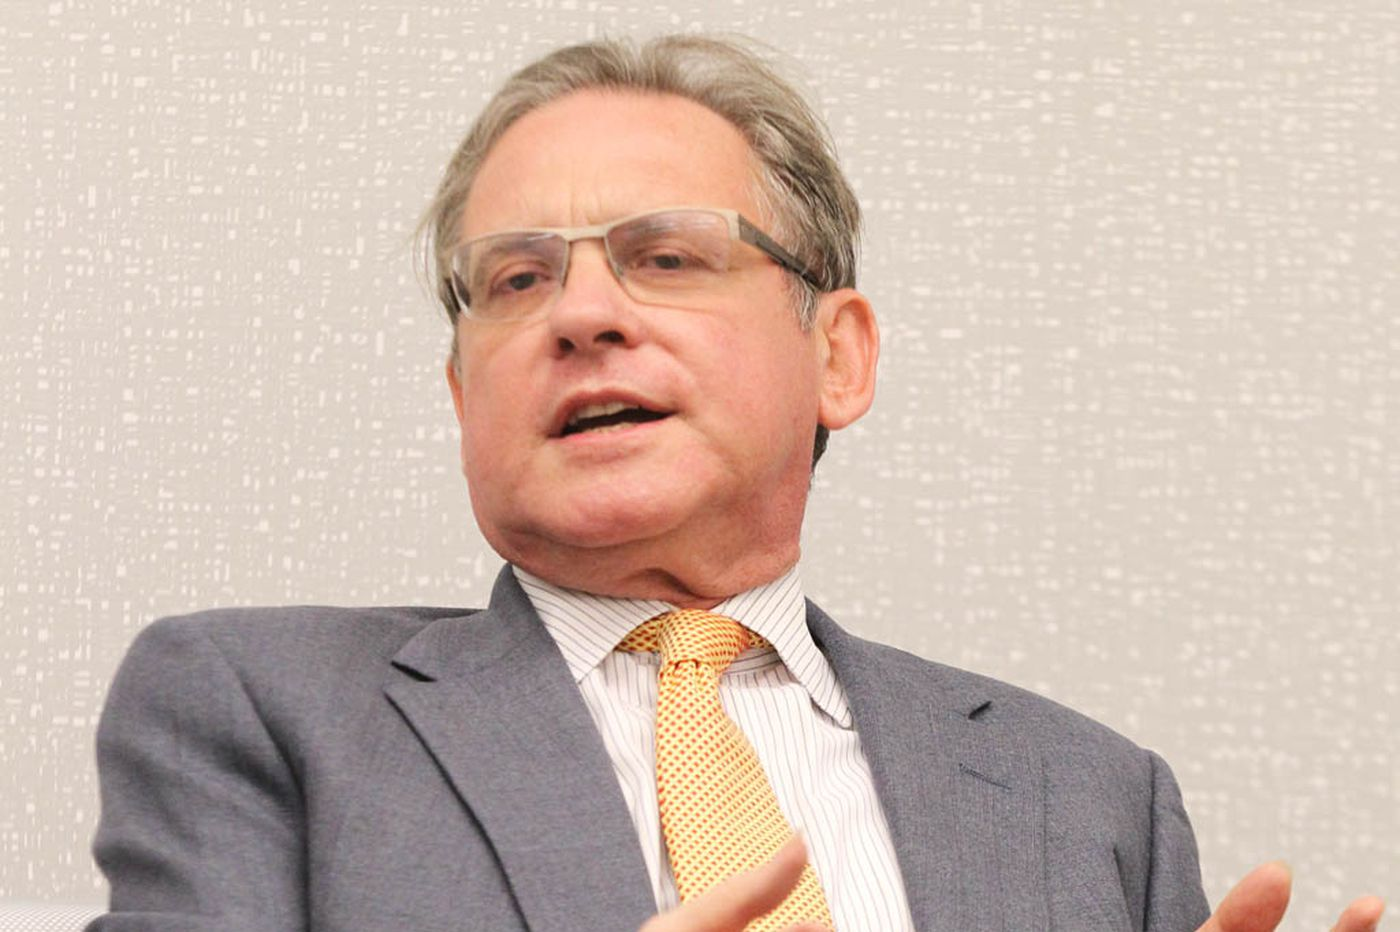 Butkovitz not running for mayor - at least, for now